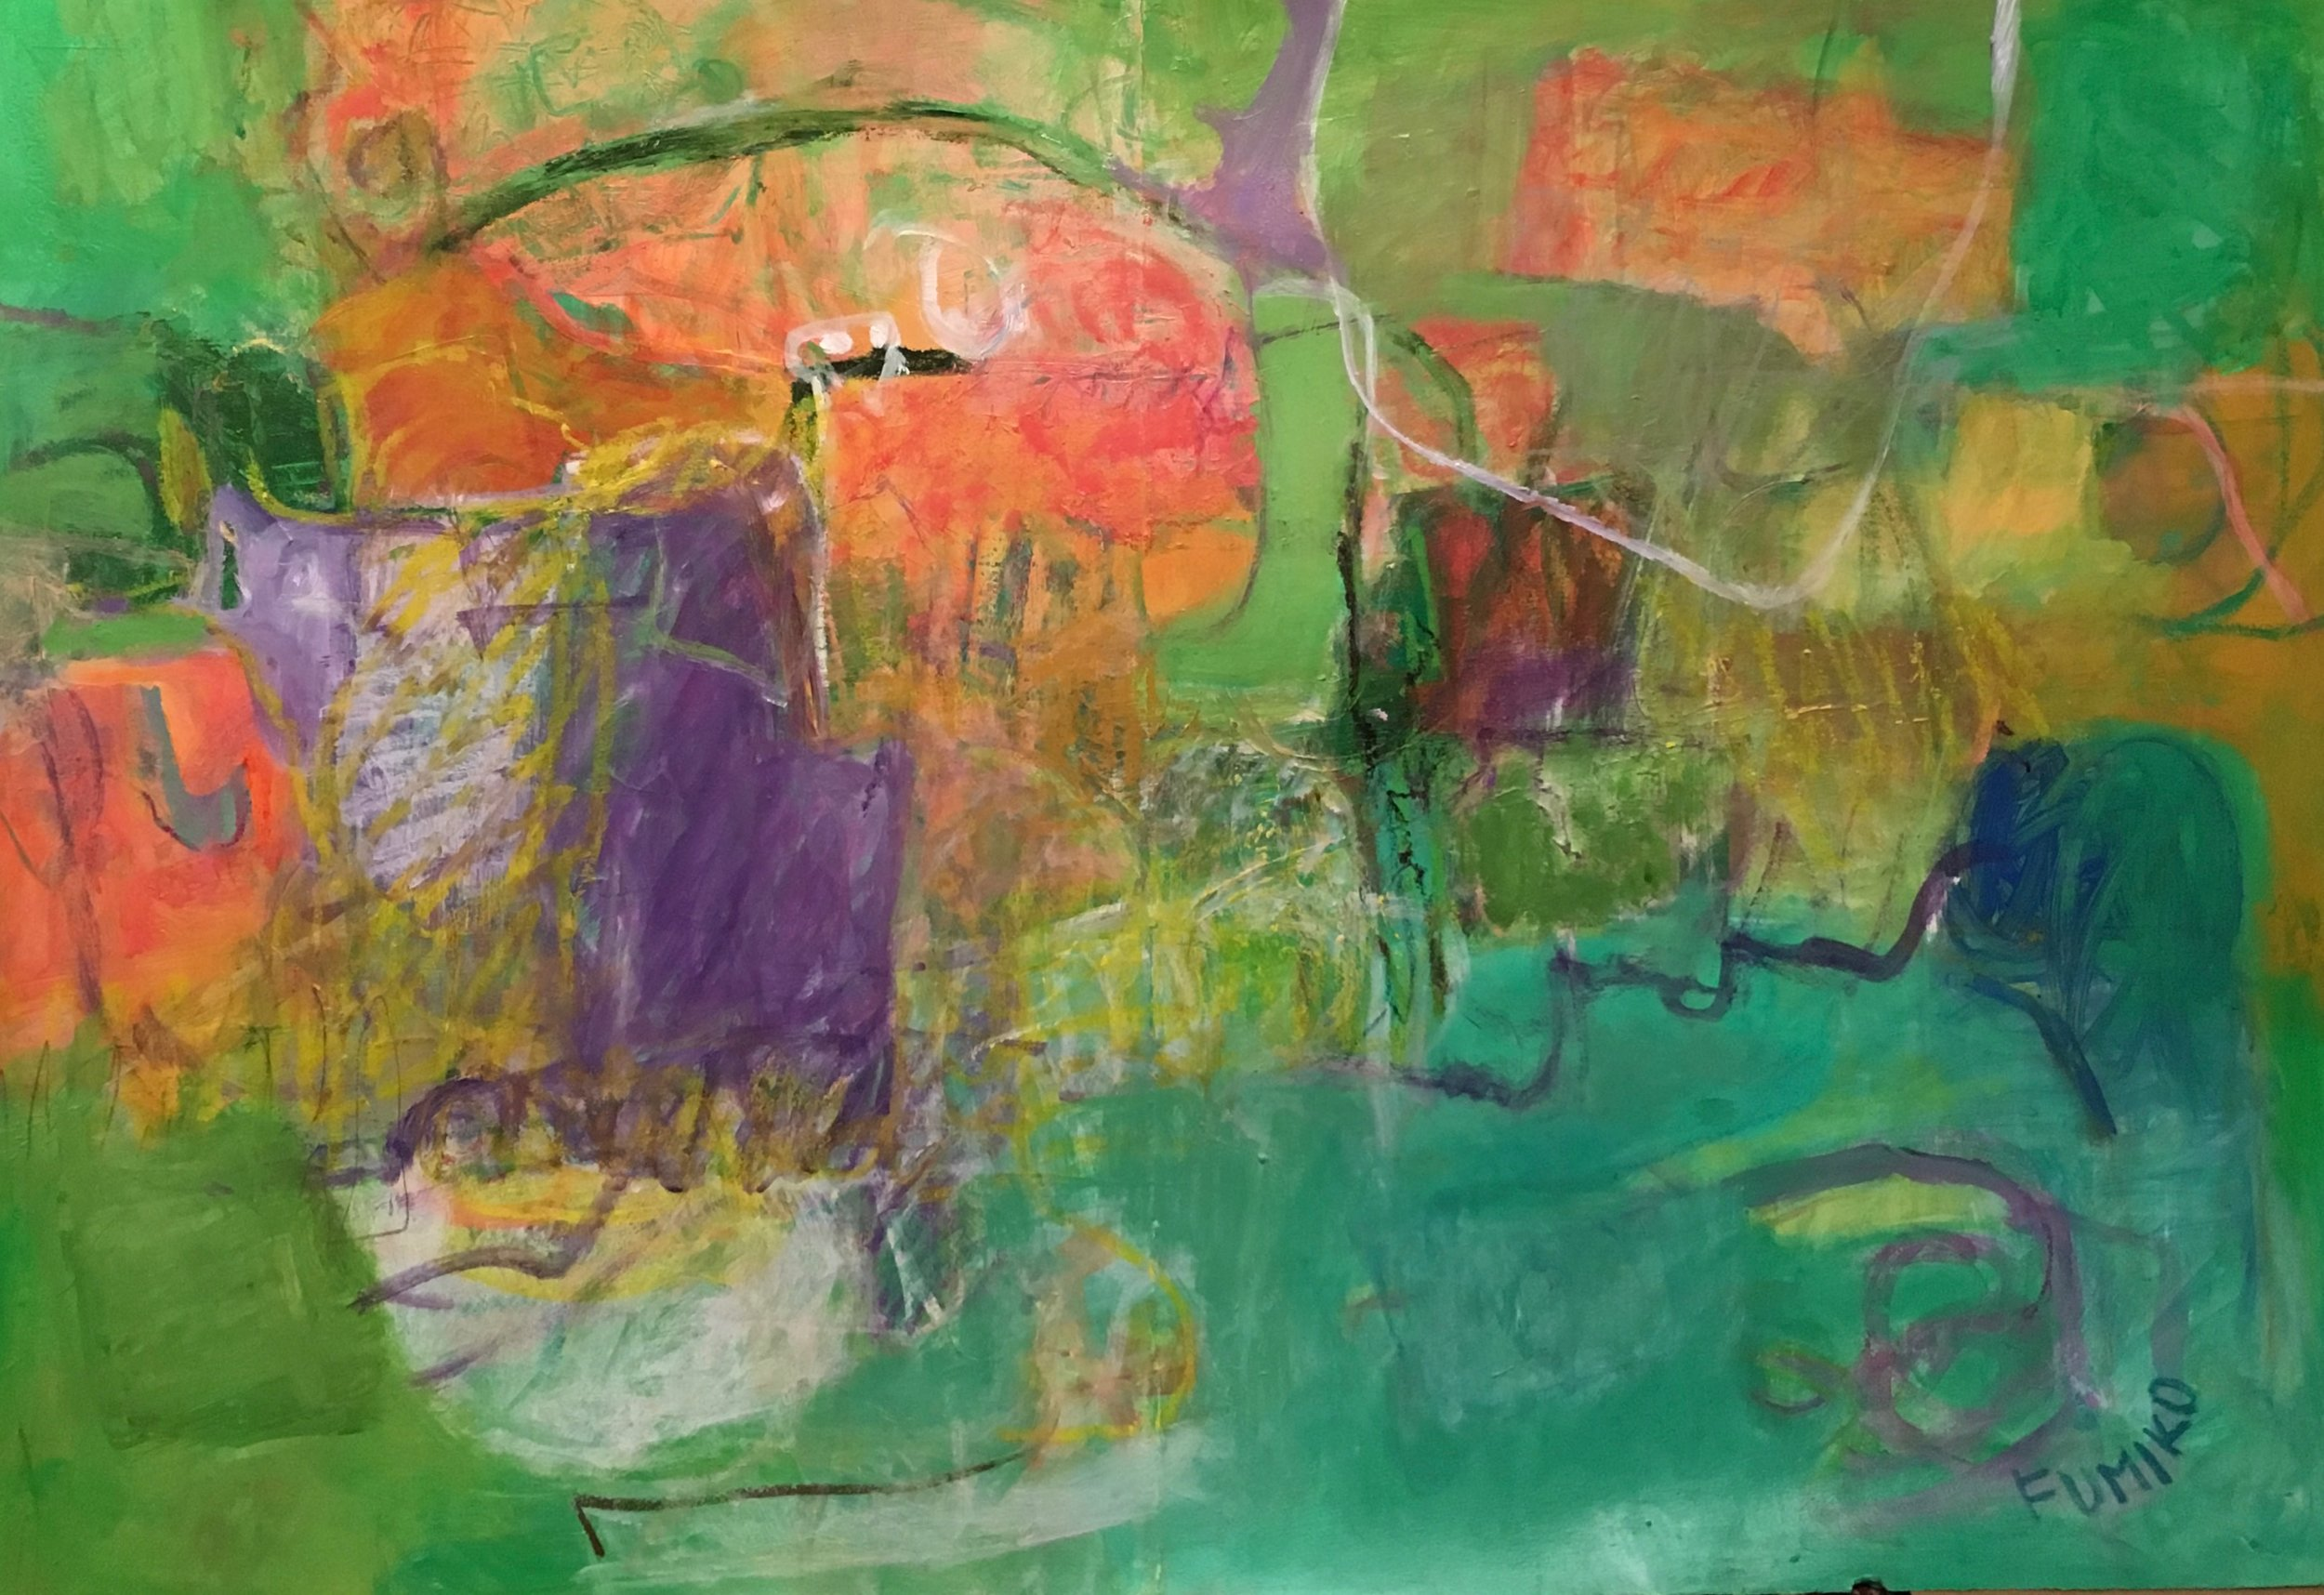 Fumiko Kashiwagi | Untitled 2015 | acrylic and oil pastel on paper | 29.75 x 43.5 in. unframed